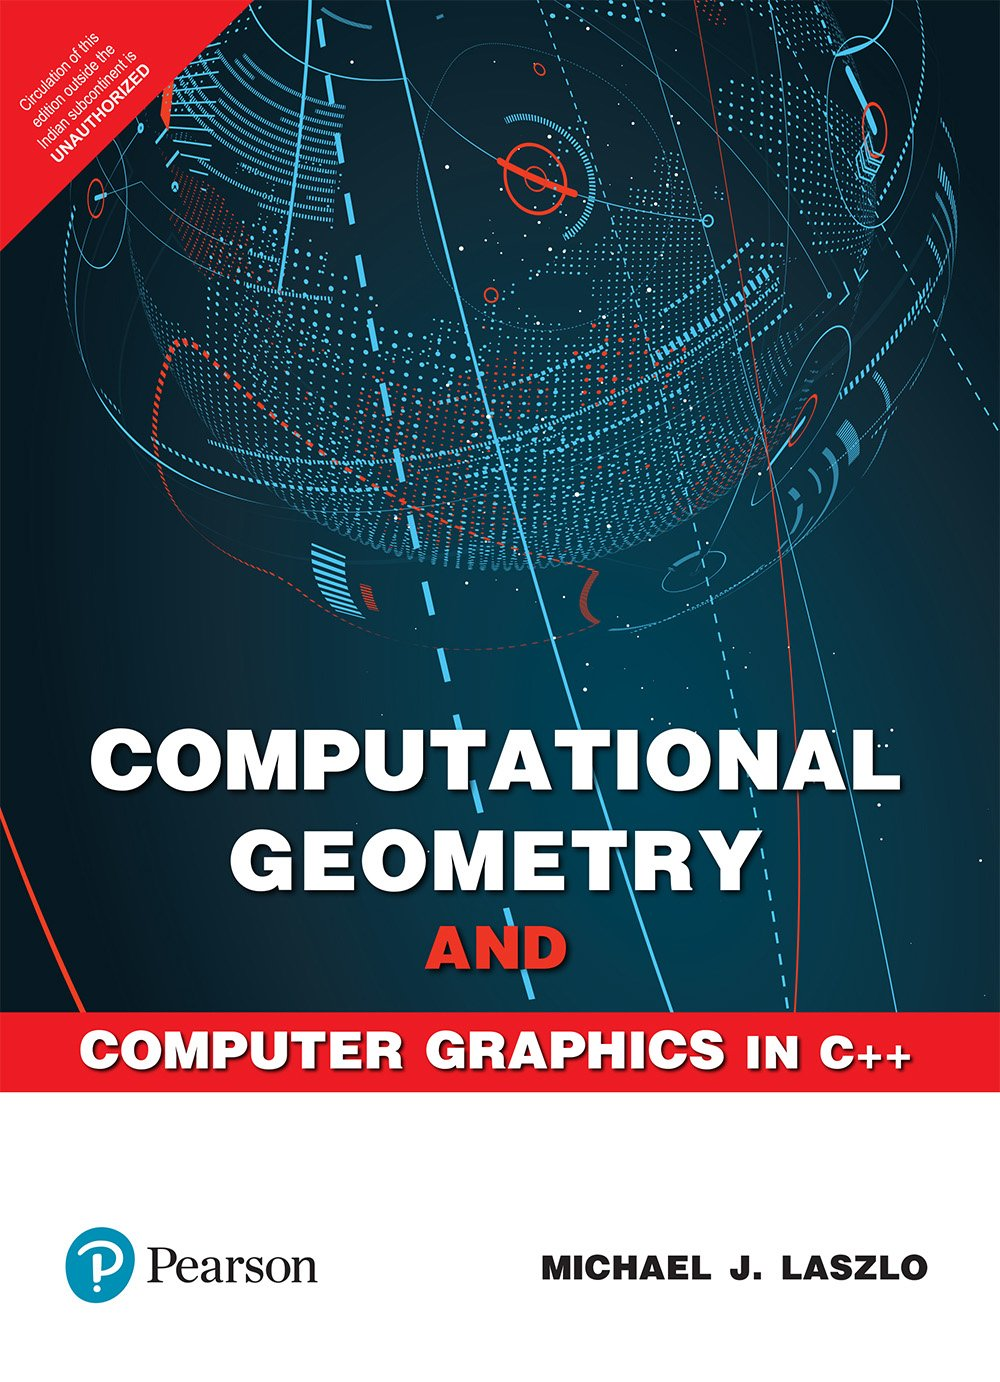 Computational Geometry And Computer Graphics In C++, 1St Edn